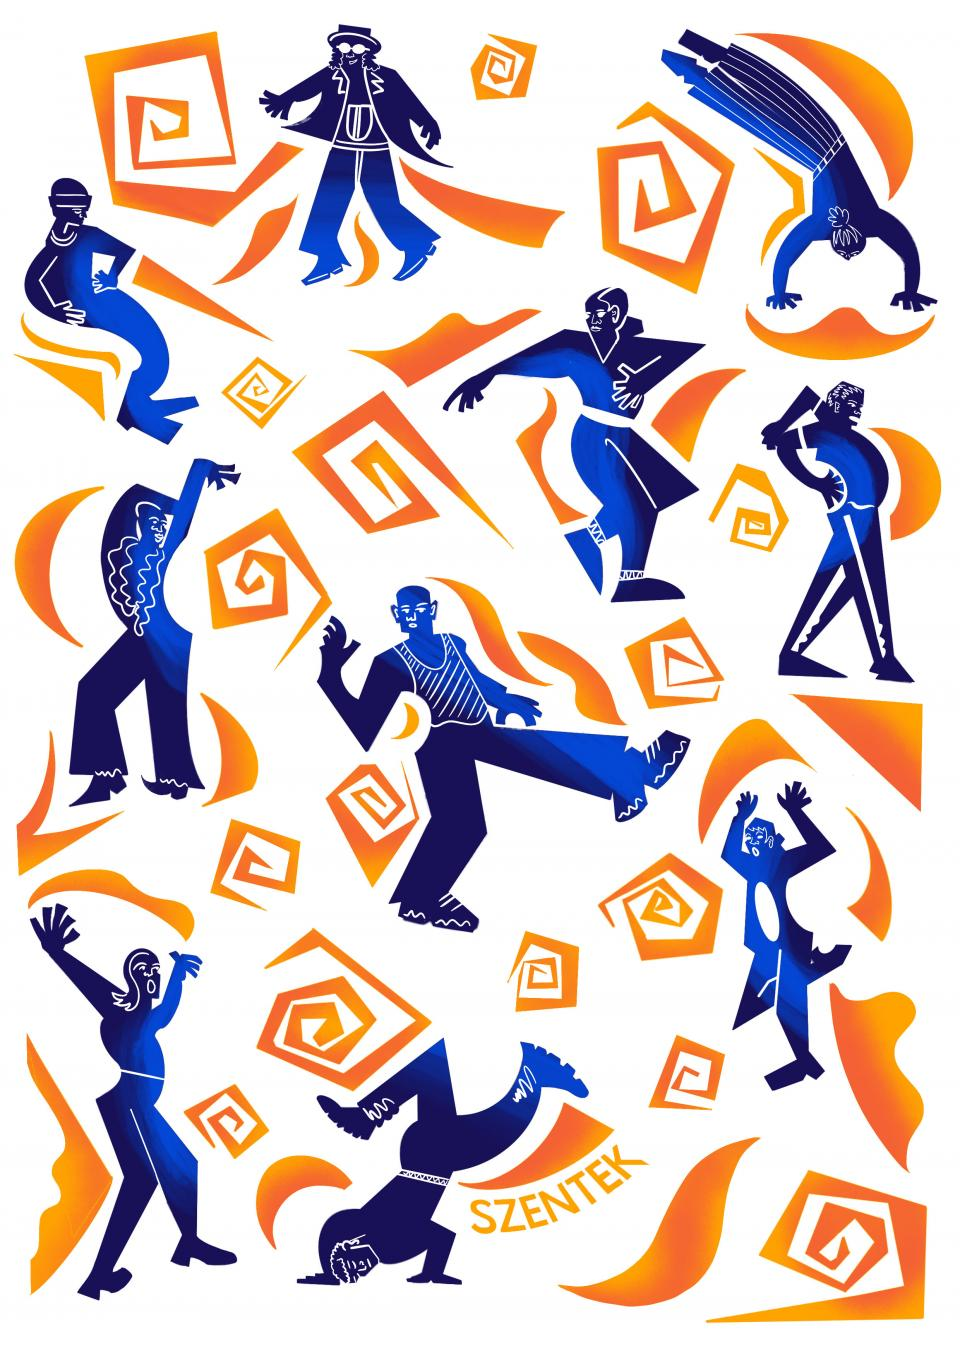 Geraldine Sawyer_Illustration - BA (Hons)_2020_CLUBLAND - The connection between illustration and dance_6.jpg